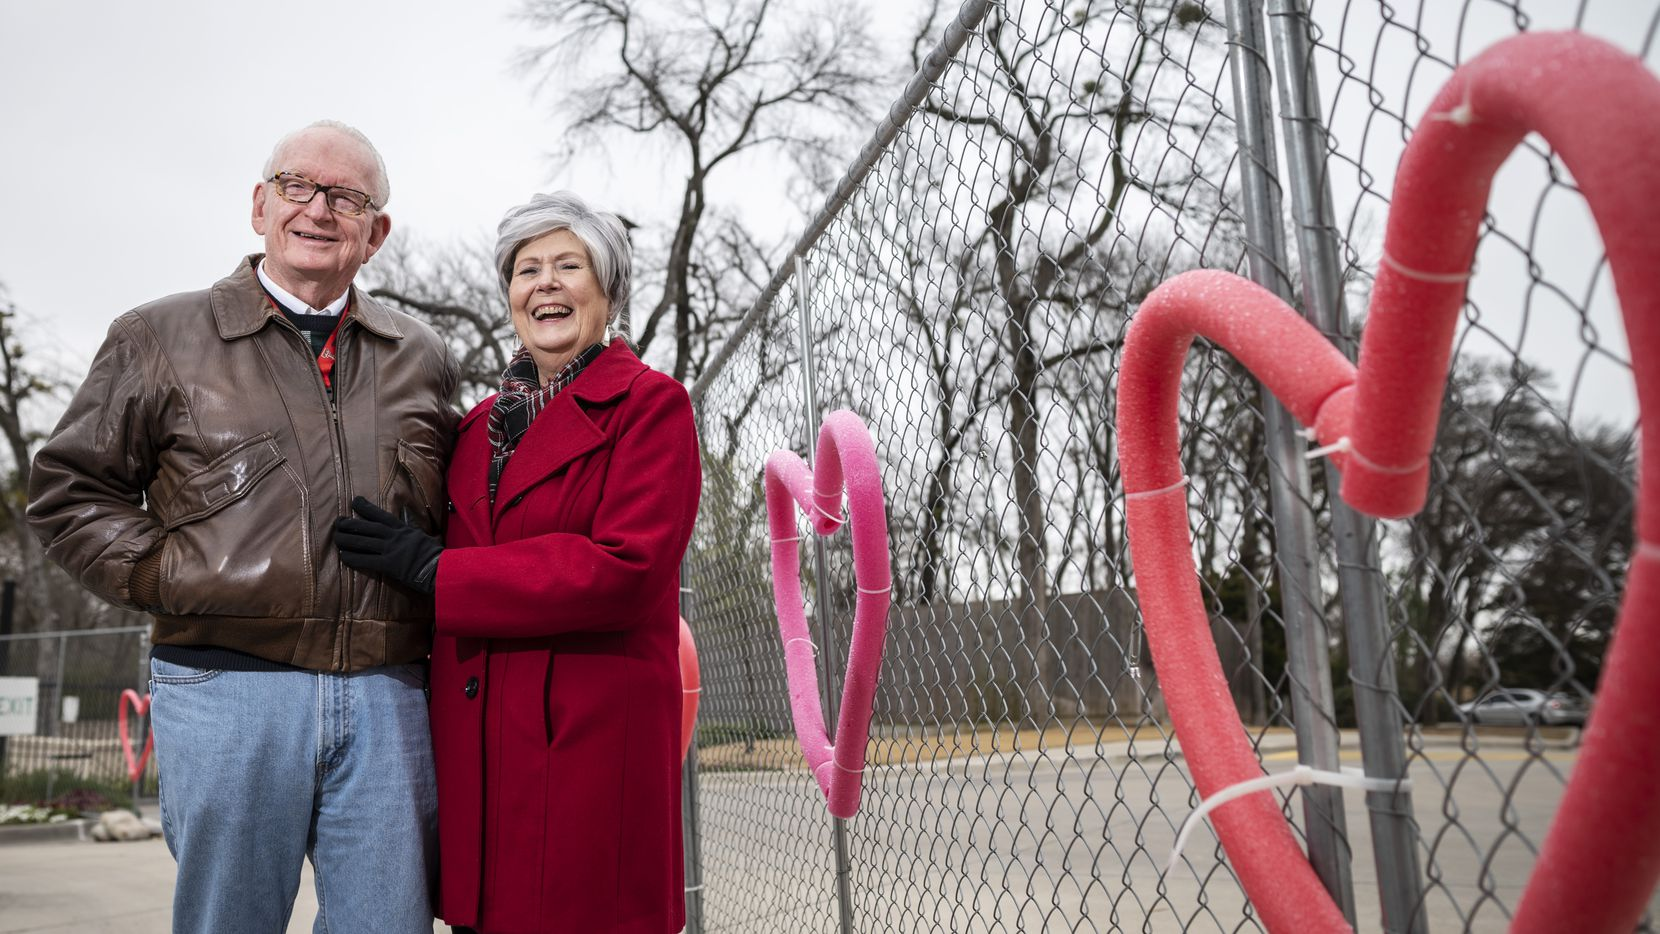 Jay Orr, 75, and Sarah Franklin, 78, are both widowed and found love with one another at CC Young Senior Living in Dallas. They say the pandemic has been easier to deal with now that they have each other.